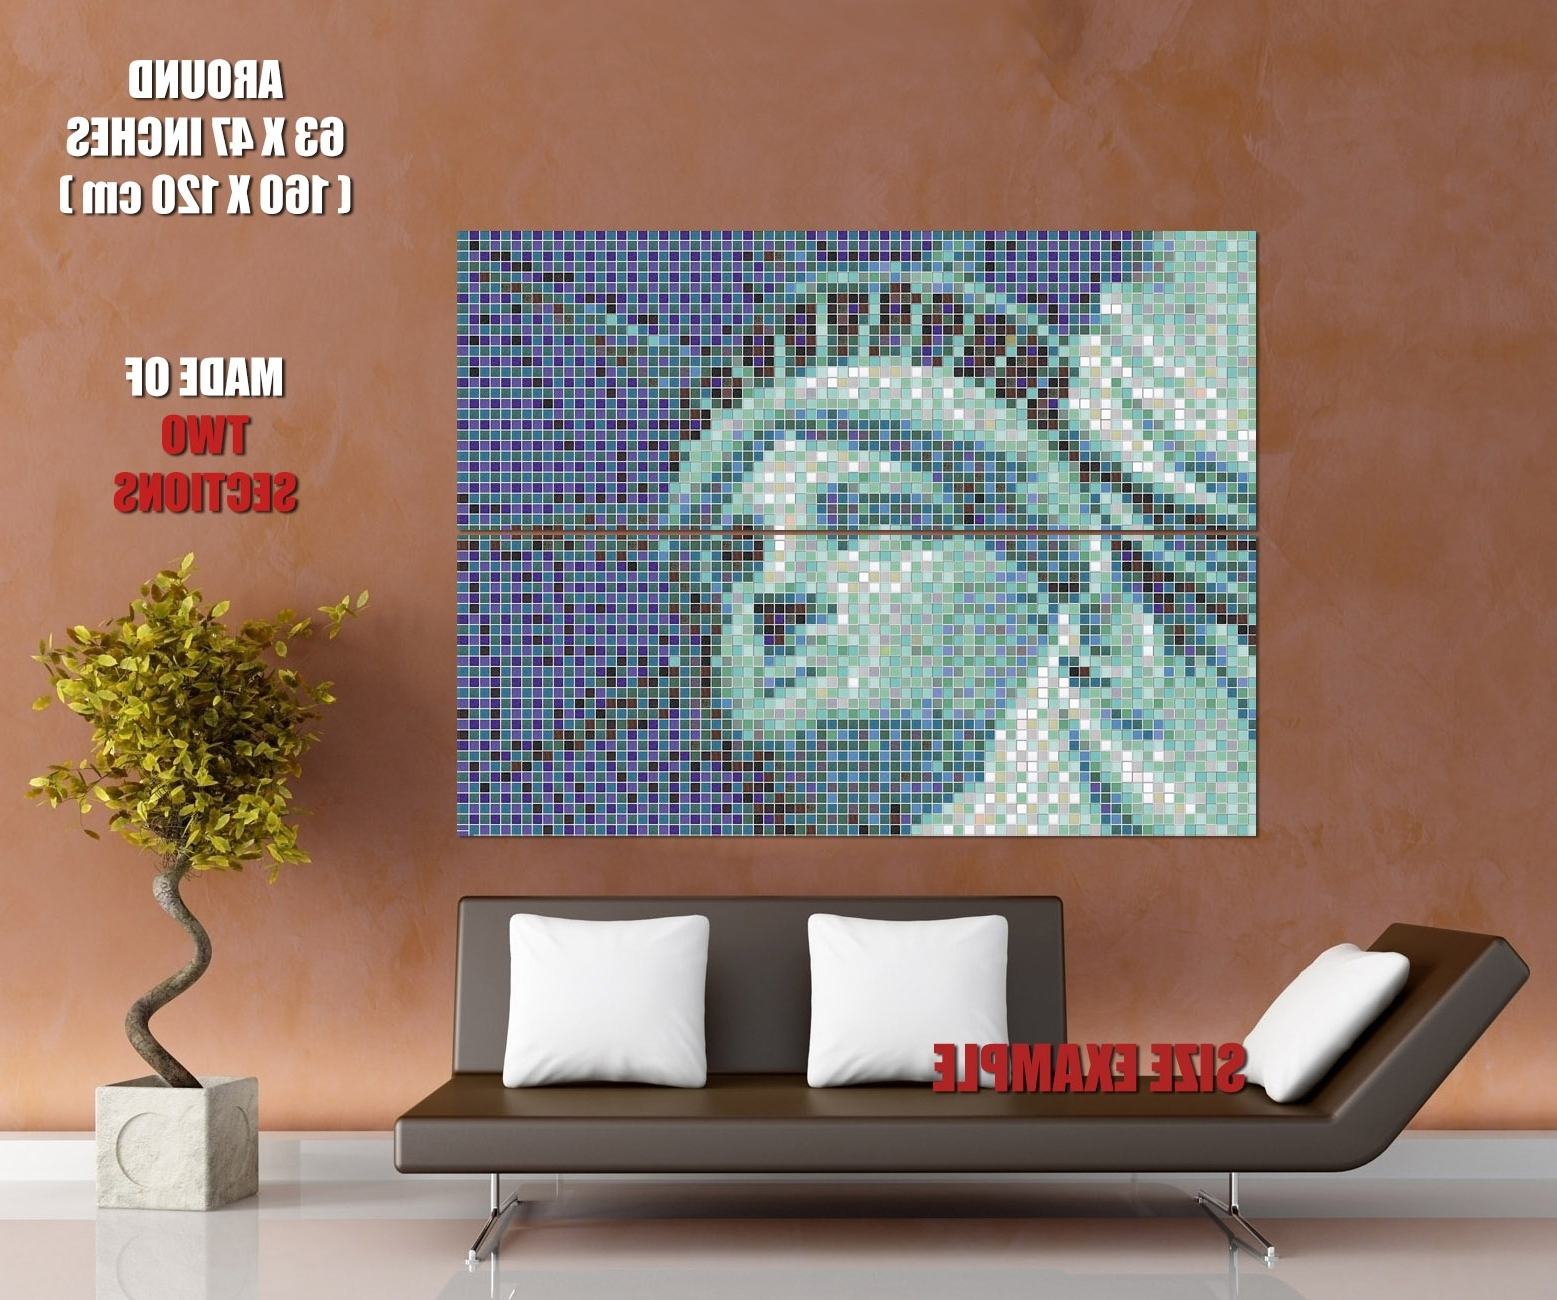 Pixel Mosaic Wall Art Within Well Known Statue Of Liberty New York Mosaic Pixel Art Wall Print Poster Uk (View 10 of 15)